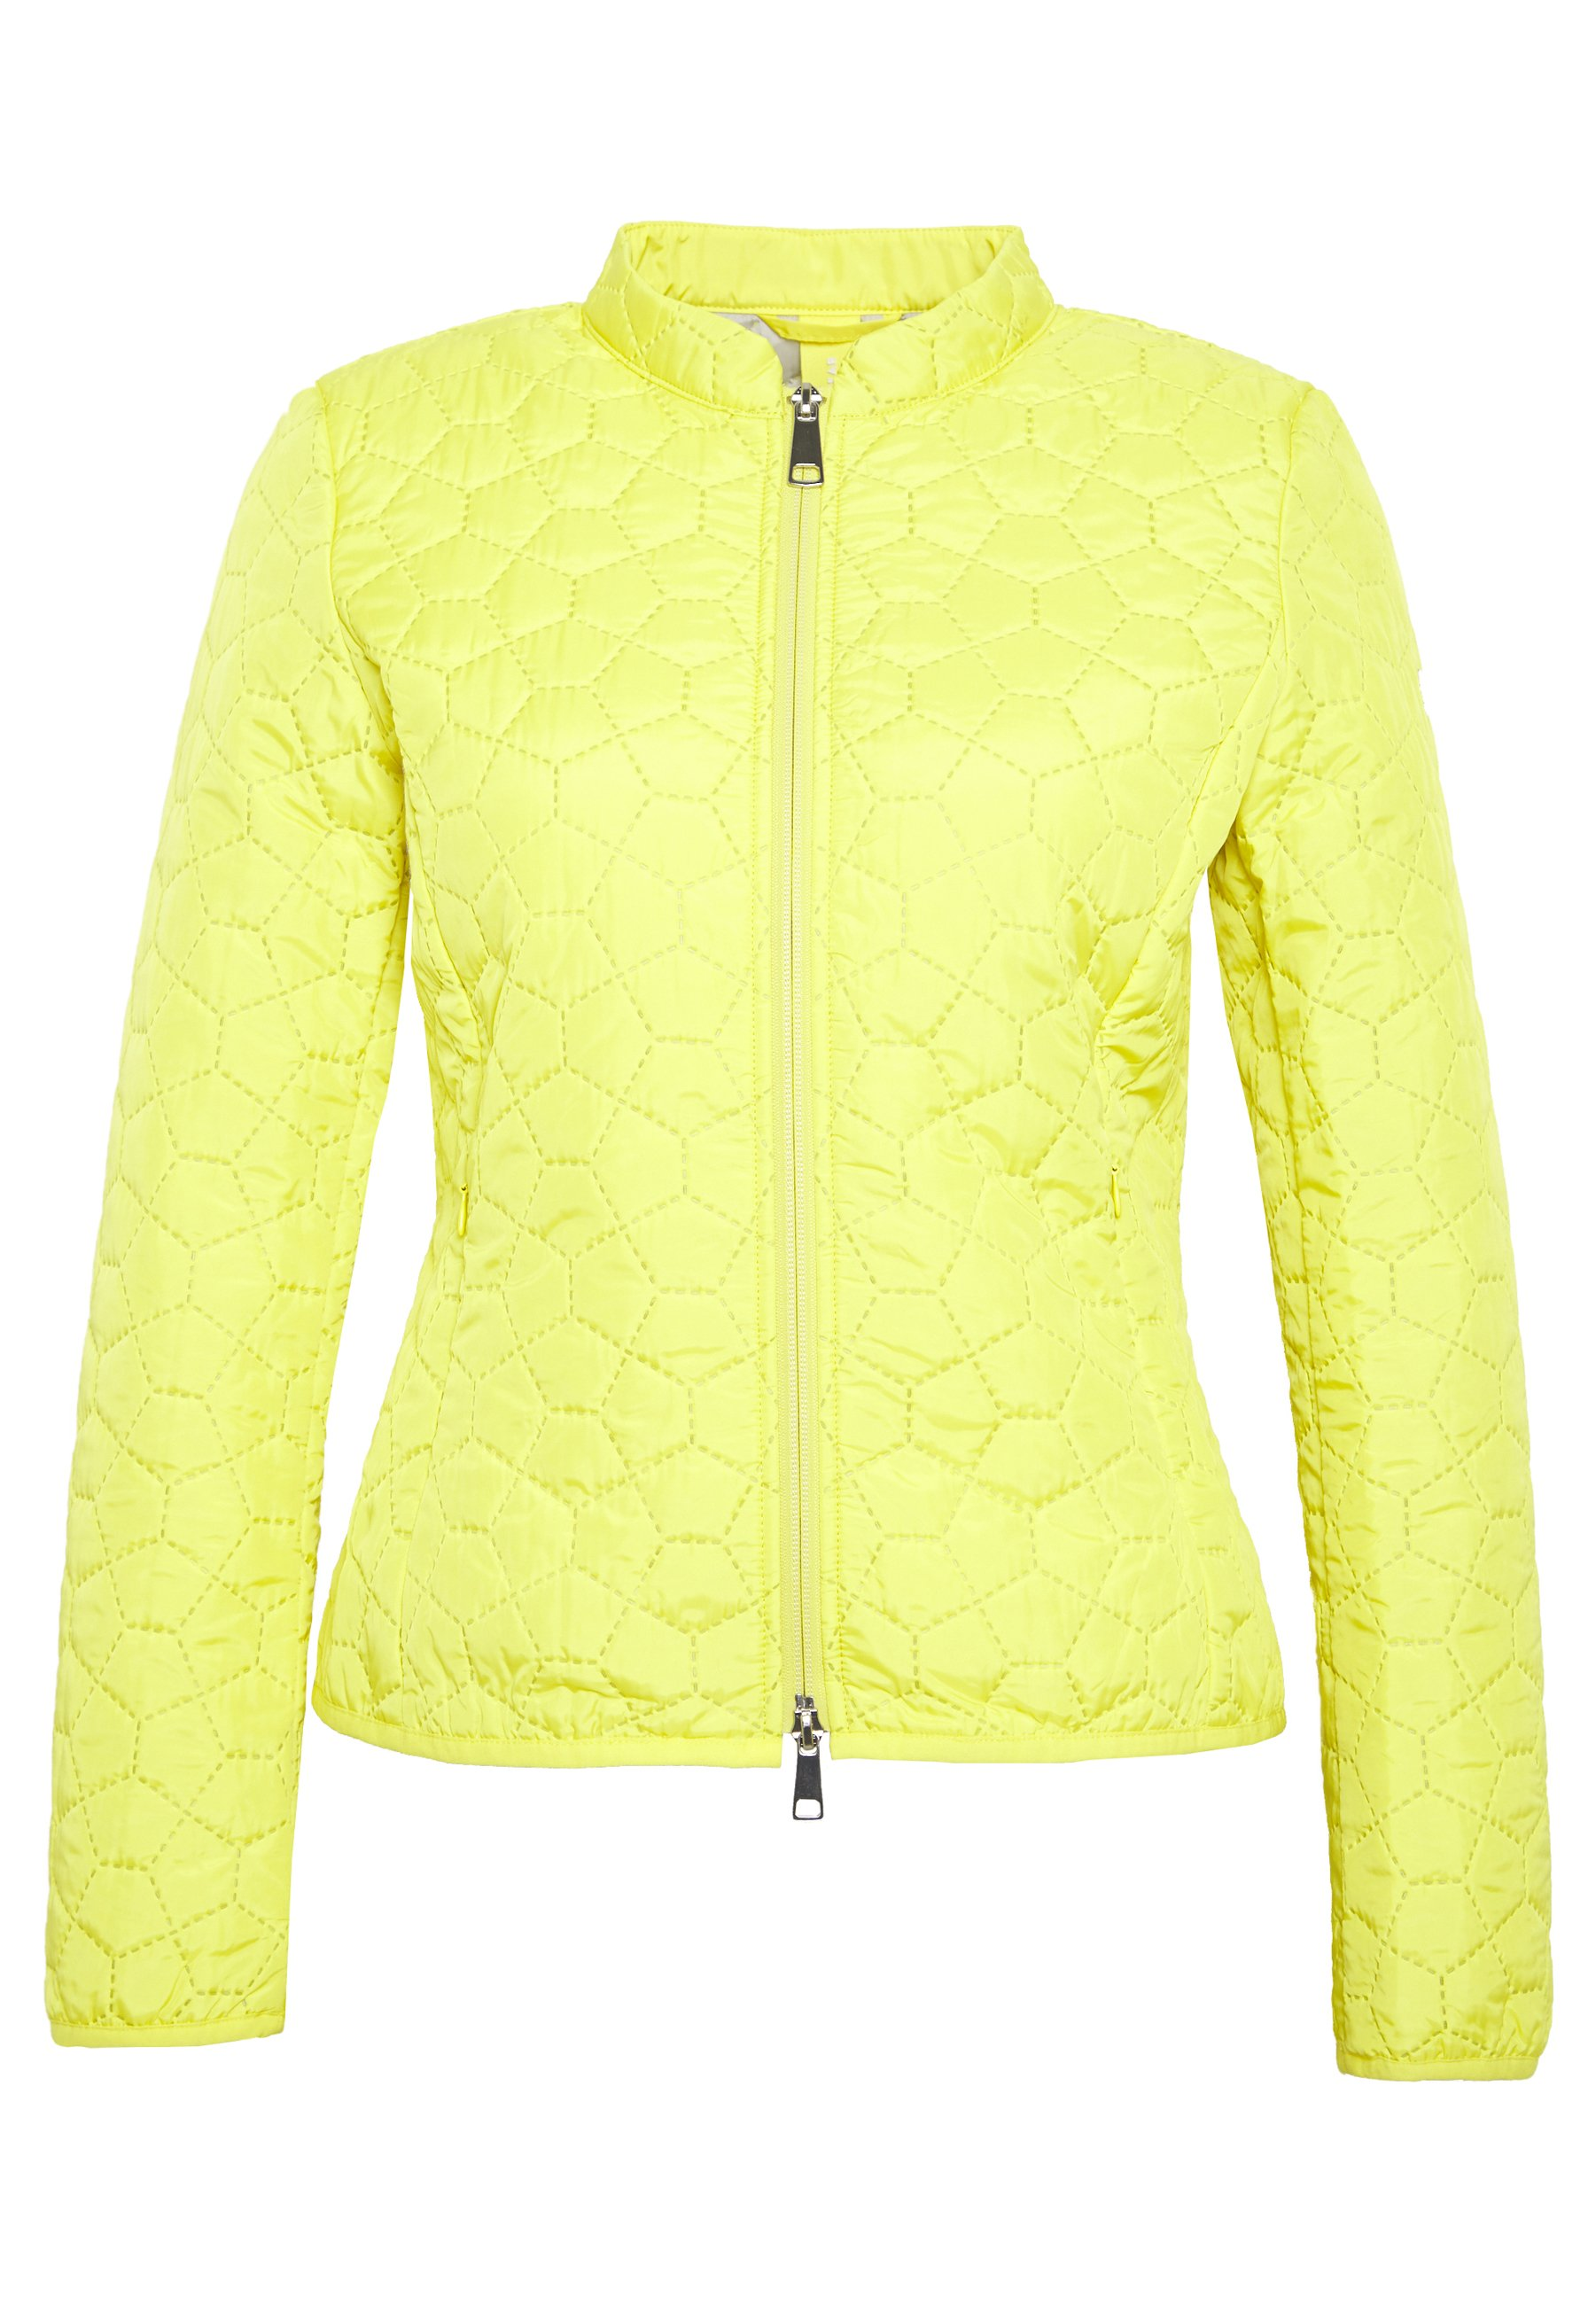 Taifun OUTDOOR Lett jakke lemonade Zalando.no